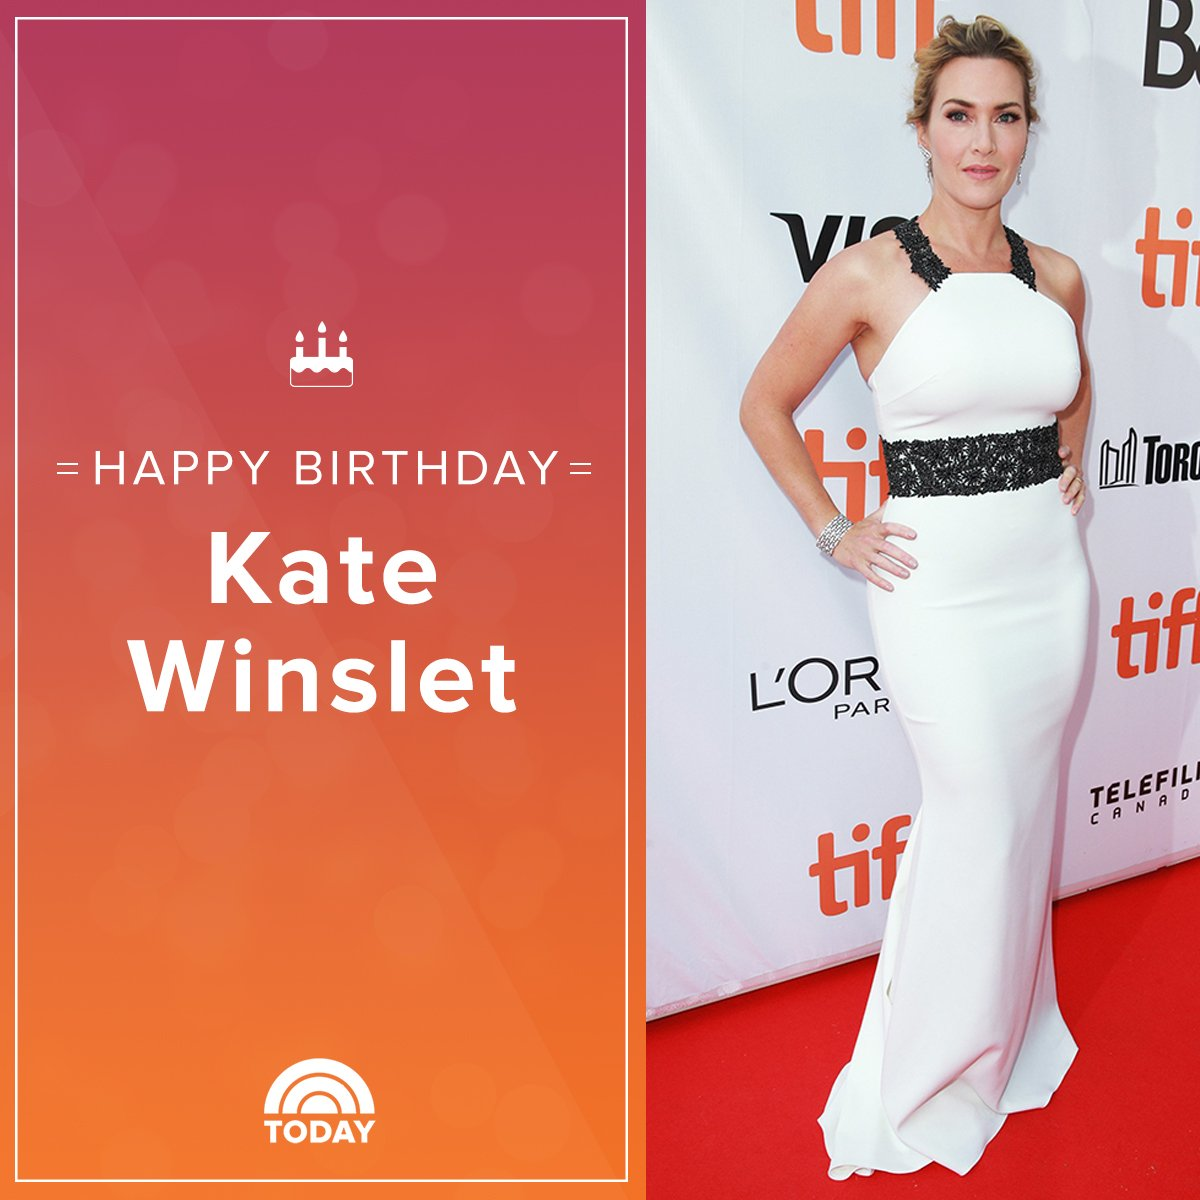 Happy birthday, Kate Winslet!